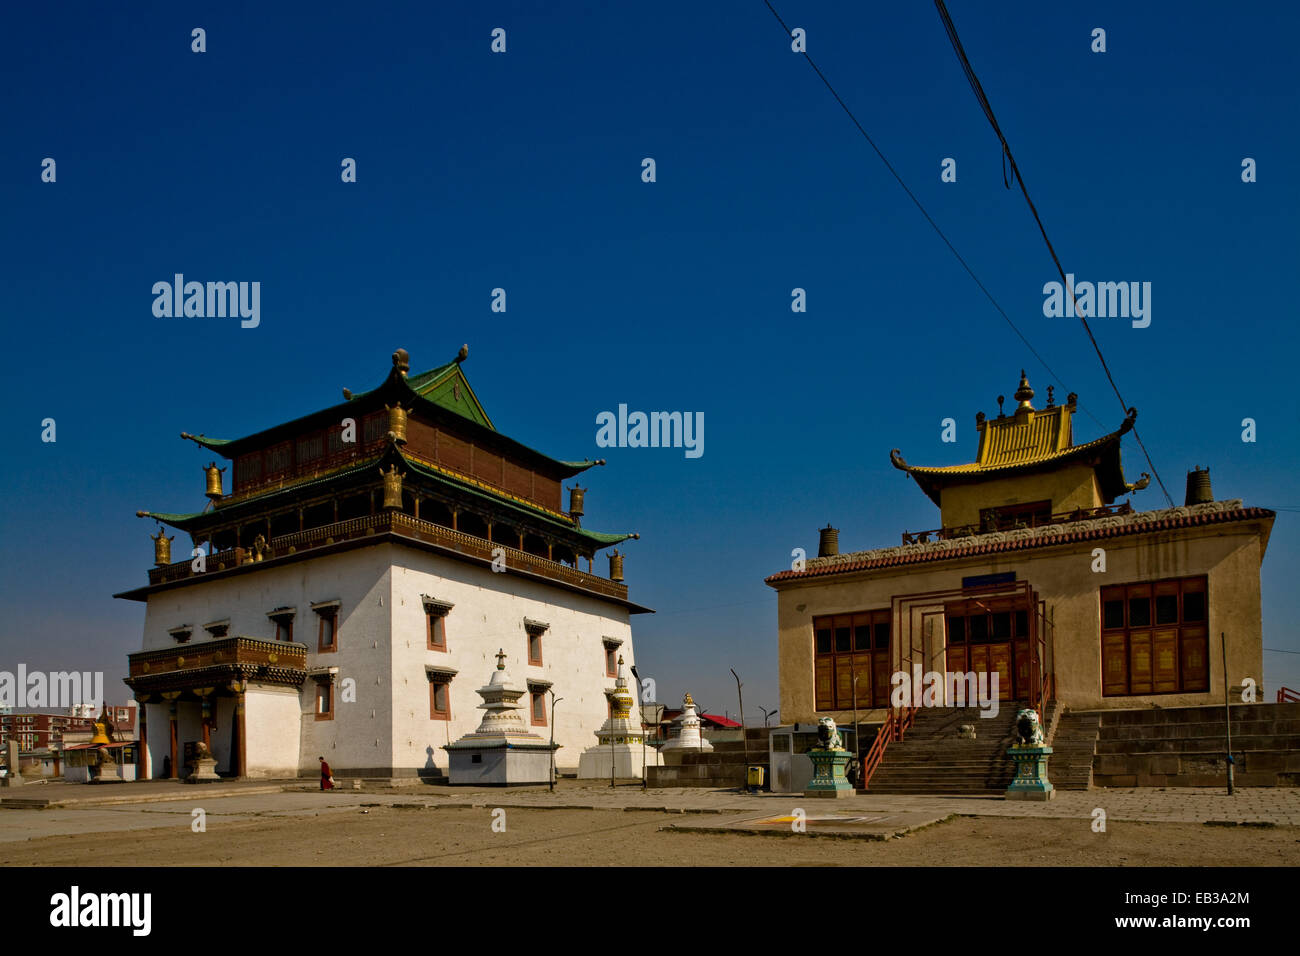 Mongolia, Ulan Bator, Gandan Khiid Monastery, Main Temple, View of two buildings against clear sky - Stock Image